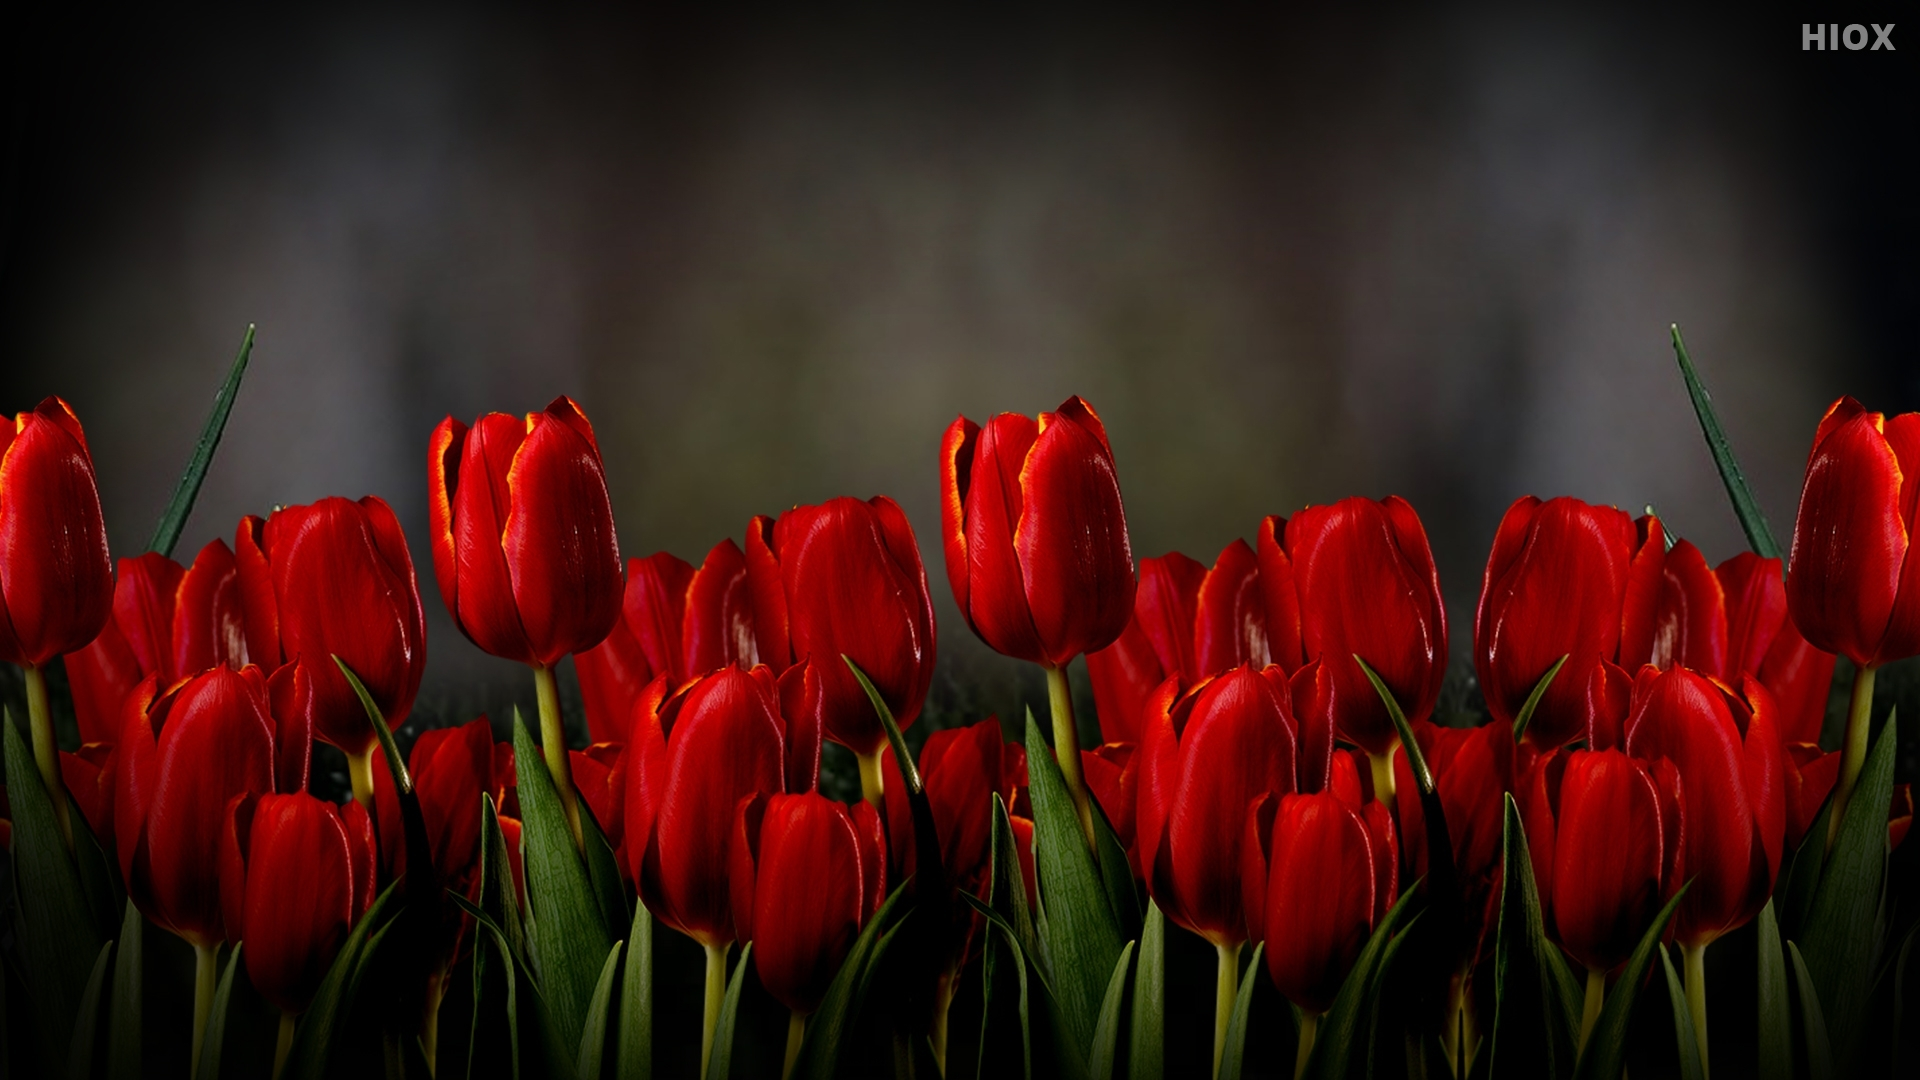 HD Image Of A Red Tulip Flower On A Dark Background